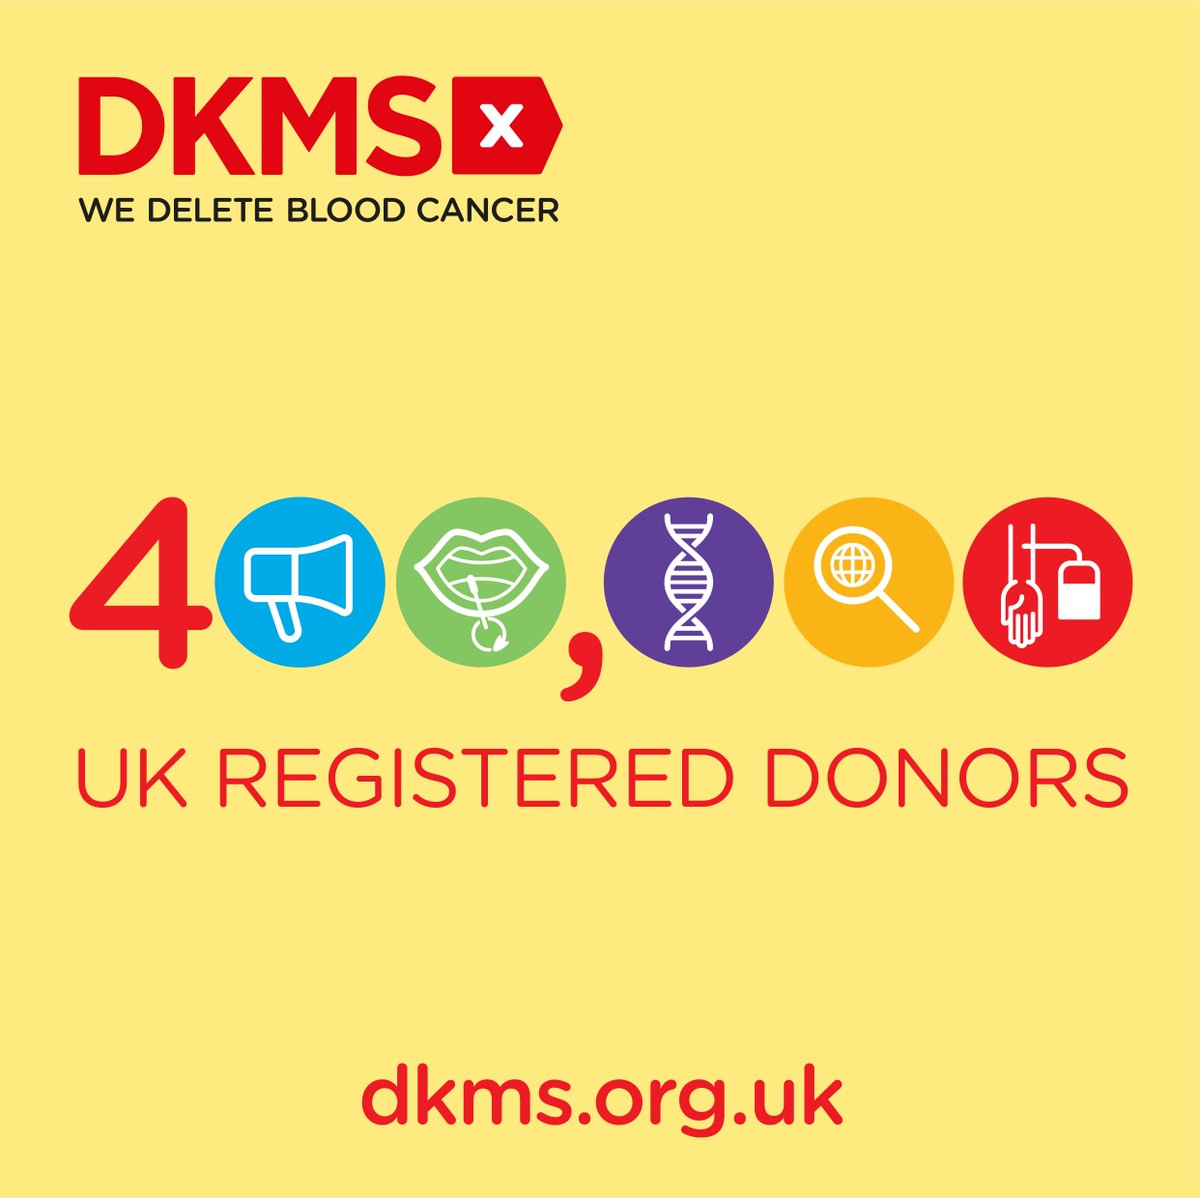 DKMS UK on Twitter: